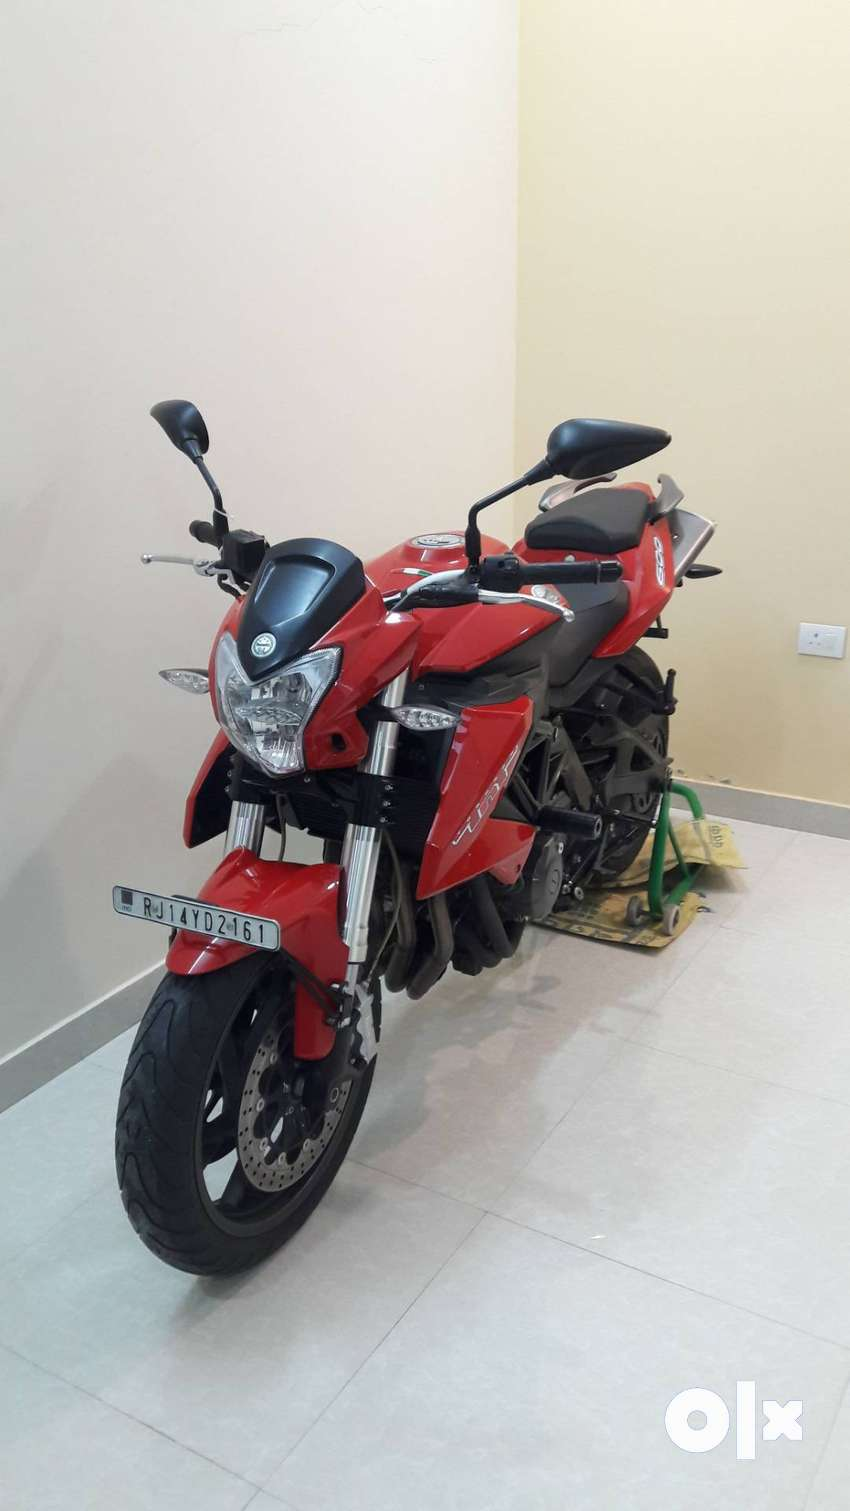 Benelli 600i TNT in excellent condition max speed 200+, excellent cond 0